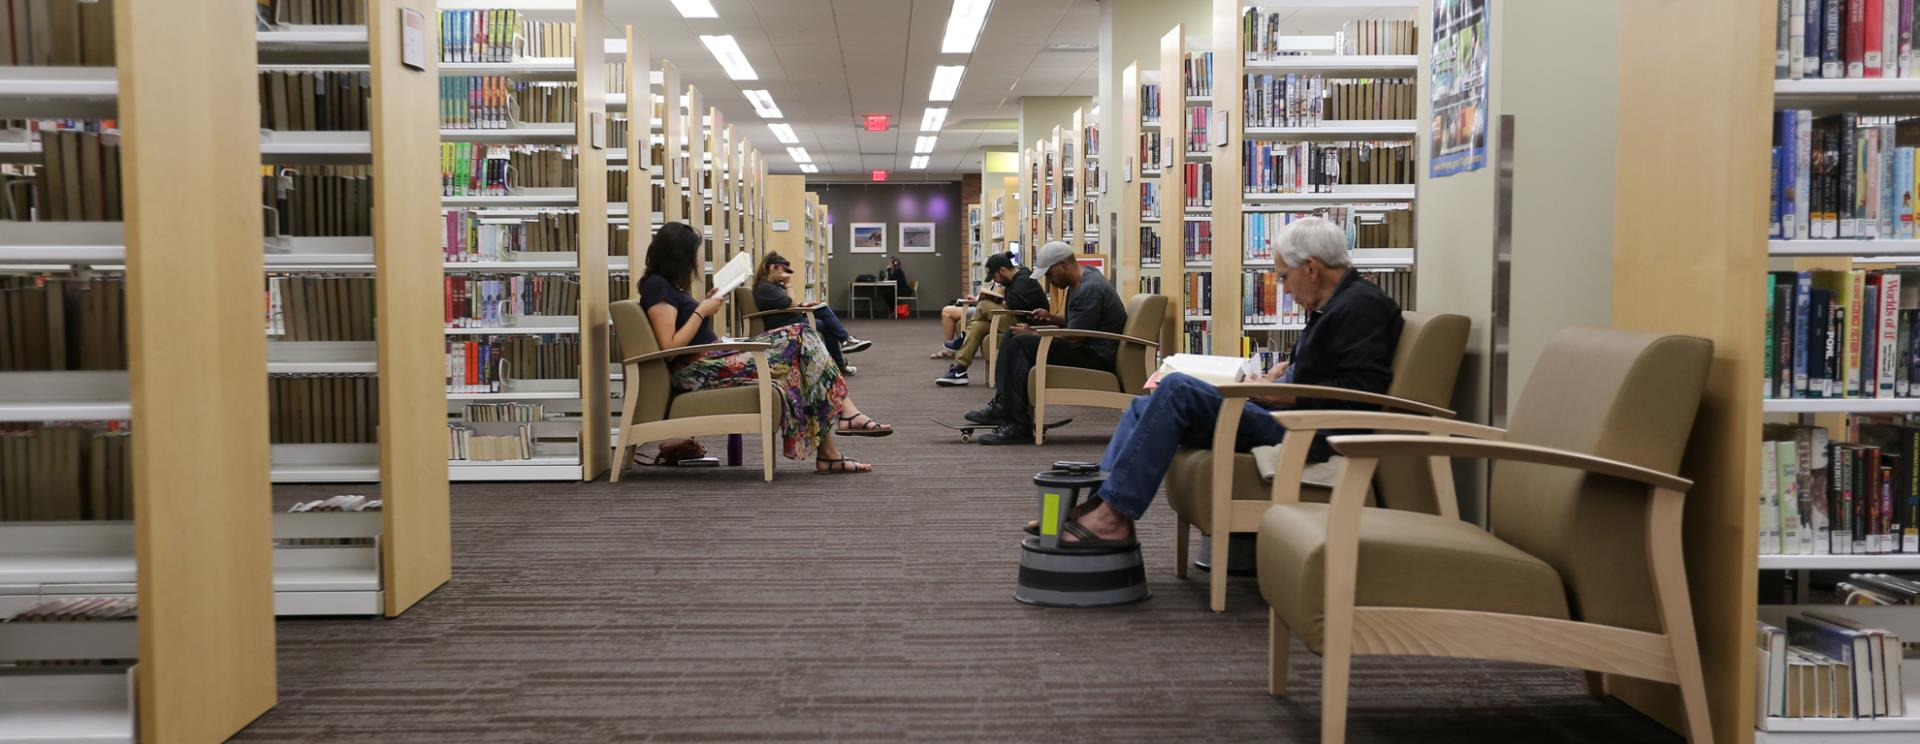 Inside the Tempe Public Library, people reading